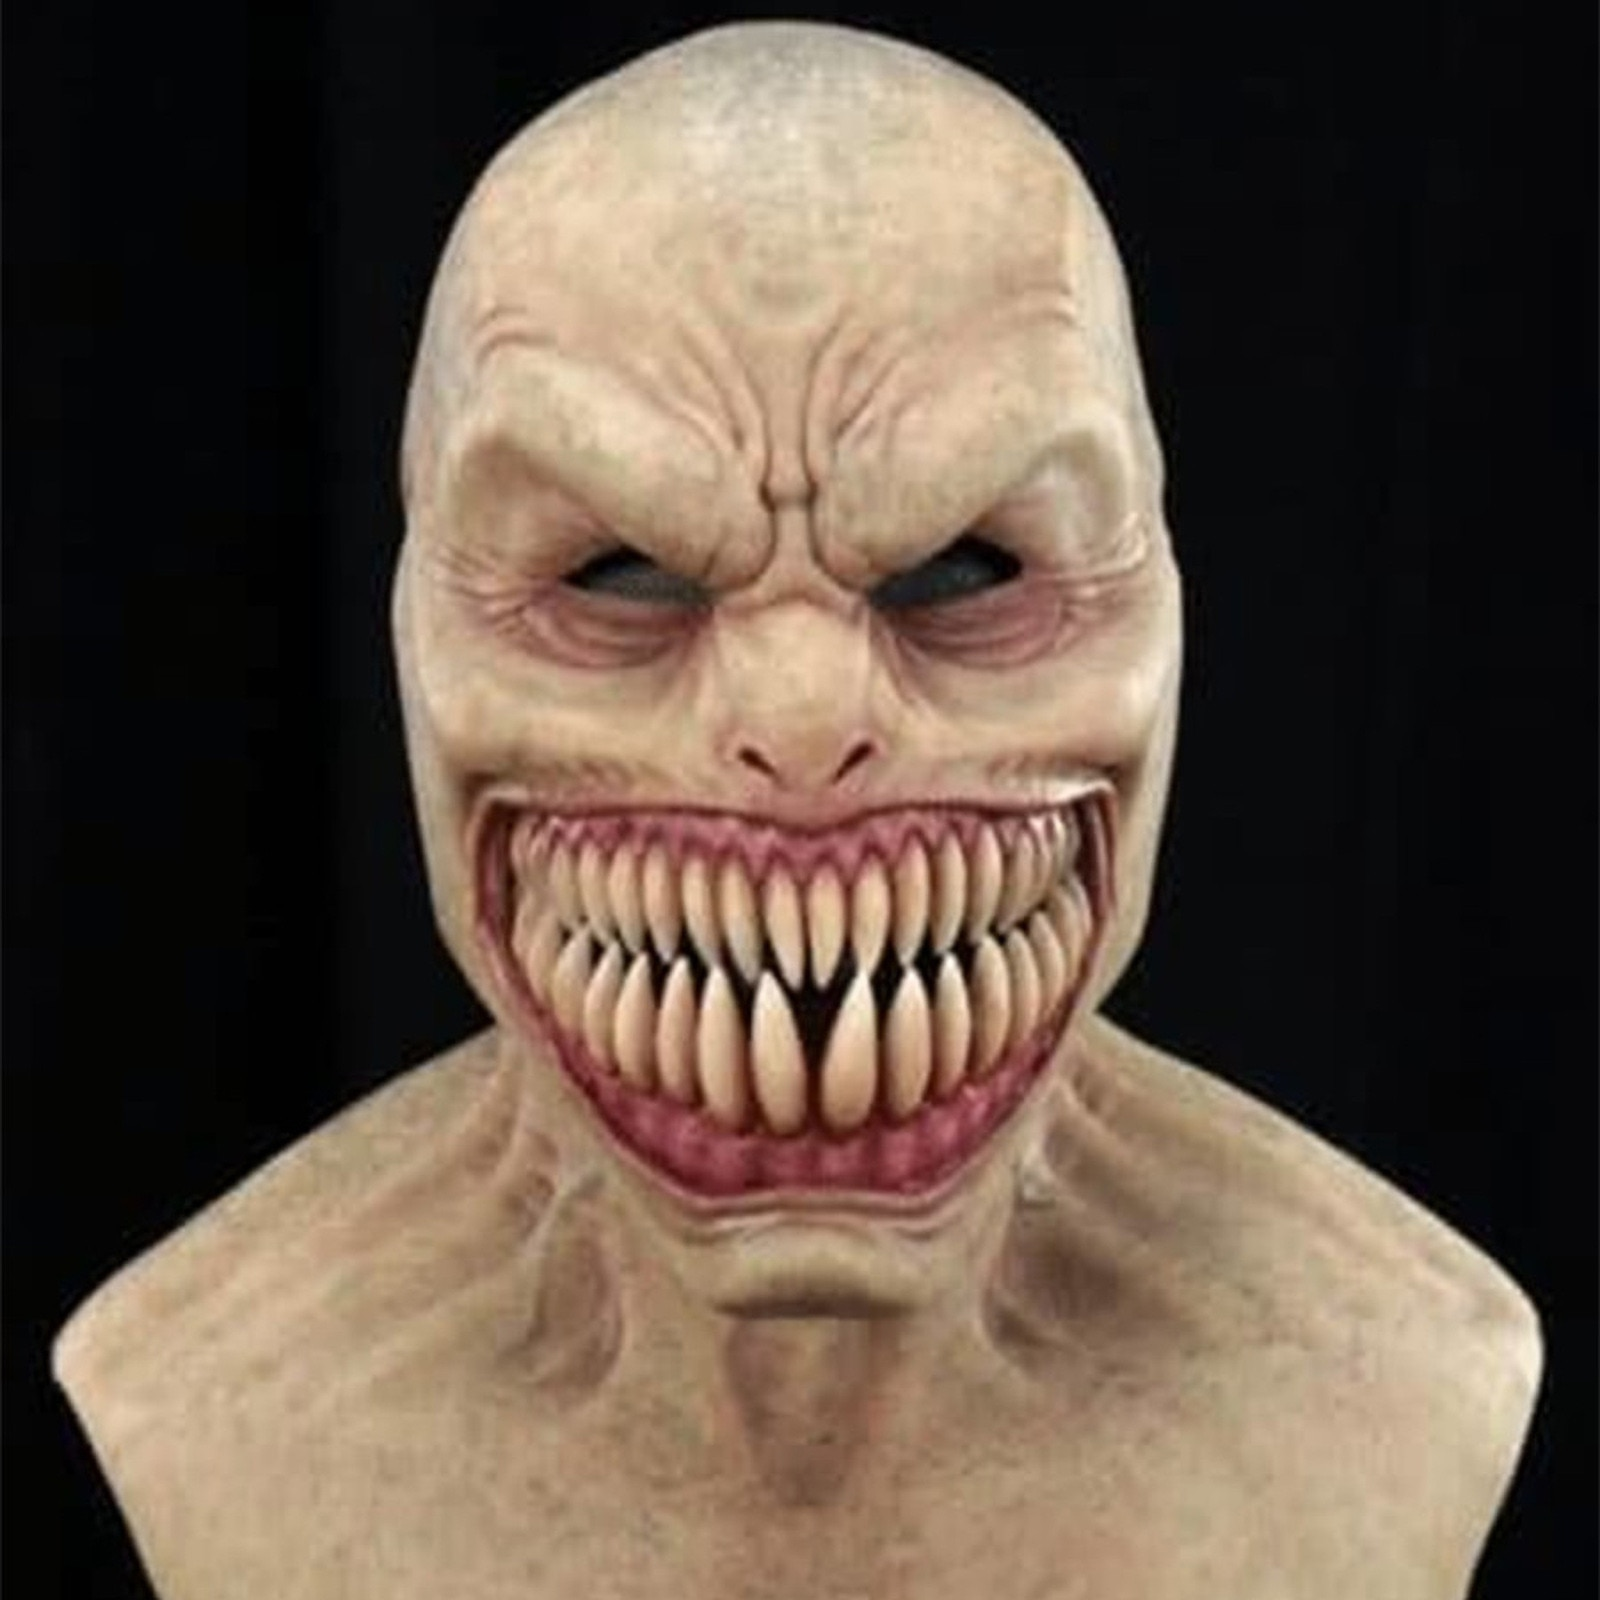 Sharp Teeth Big Mouth Halloween Toy Horror Wrinkle Scary Face Mask Masquerade Realistic Decor Evil Resident Grimace Mascaras